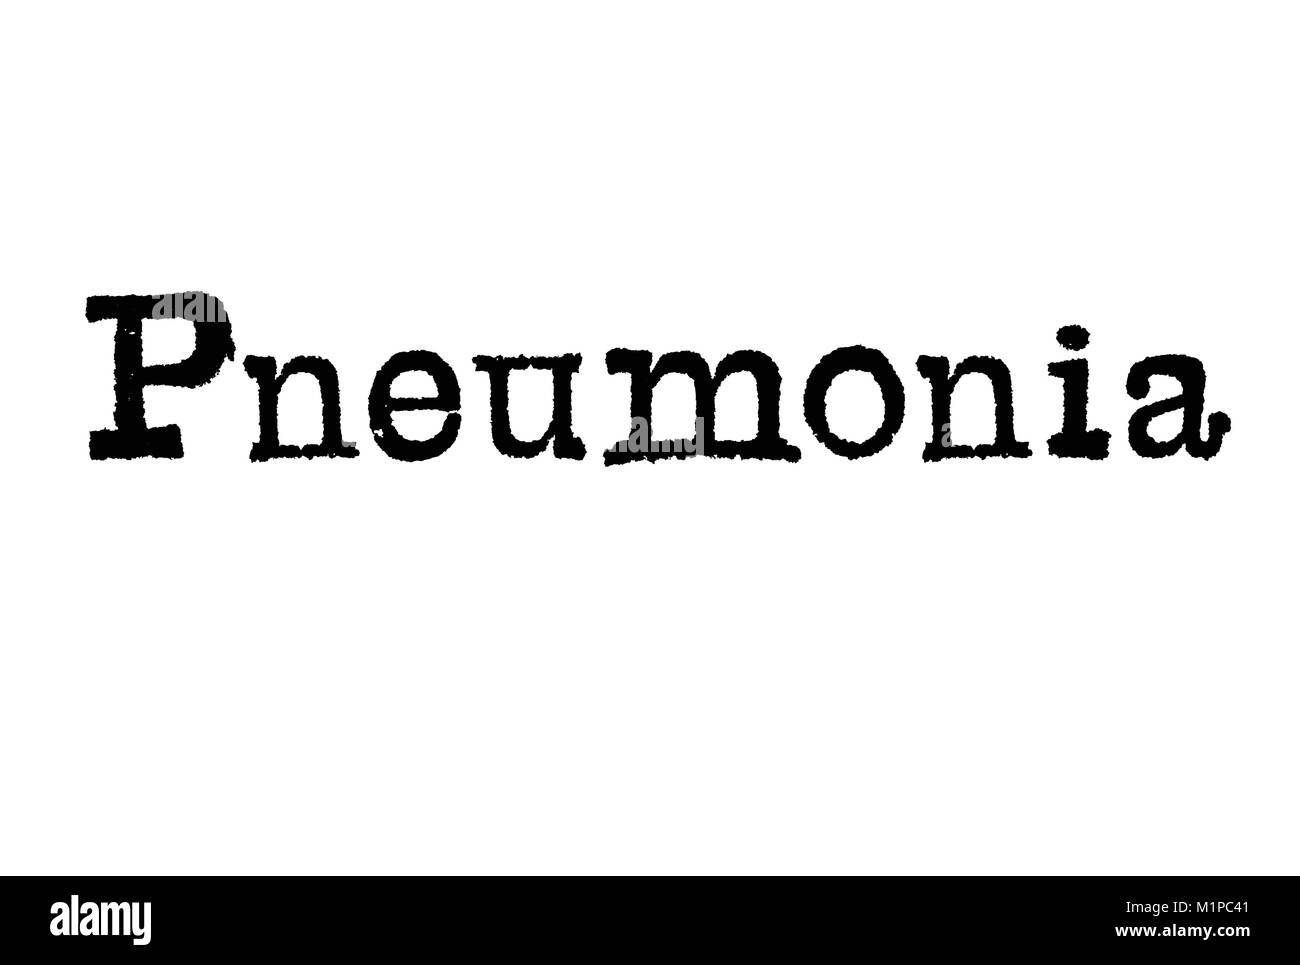 The word Pneumonia from a typewriter on a white background - Stock Image